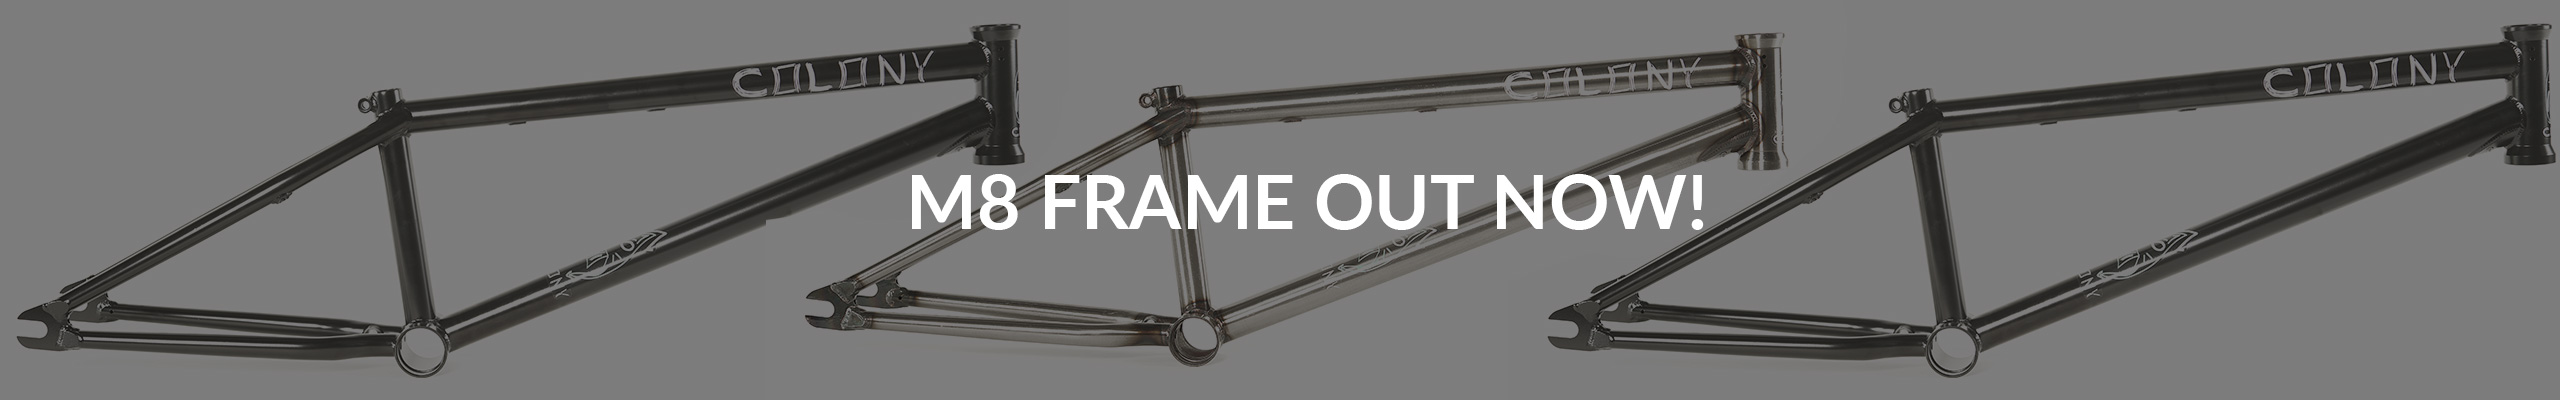 Colony M8 frame out now